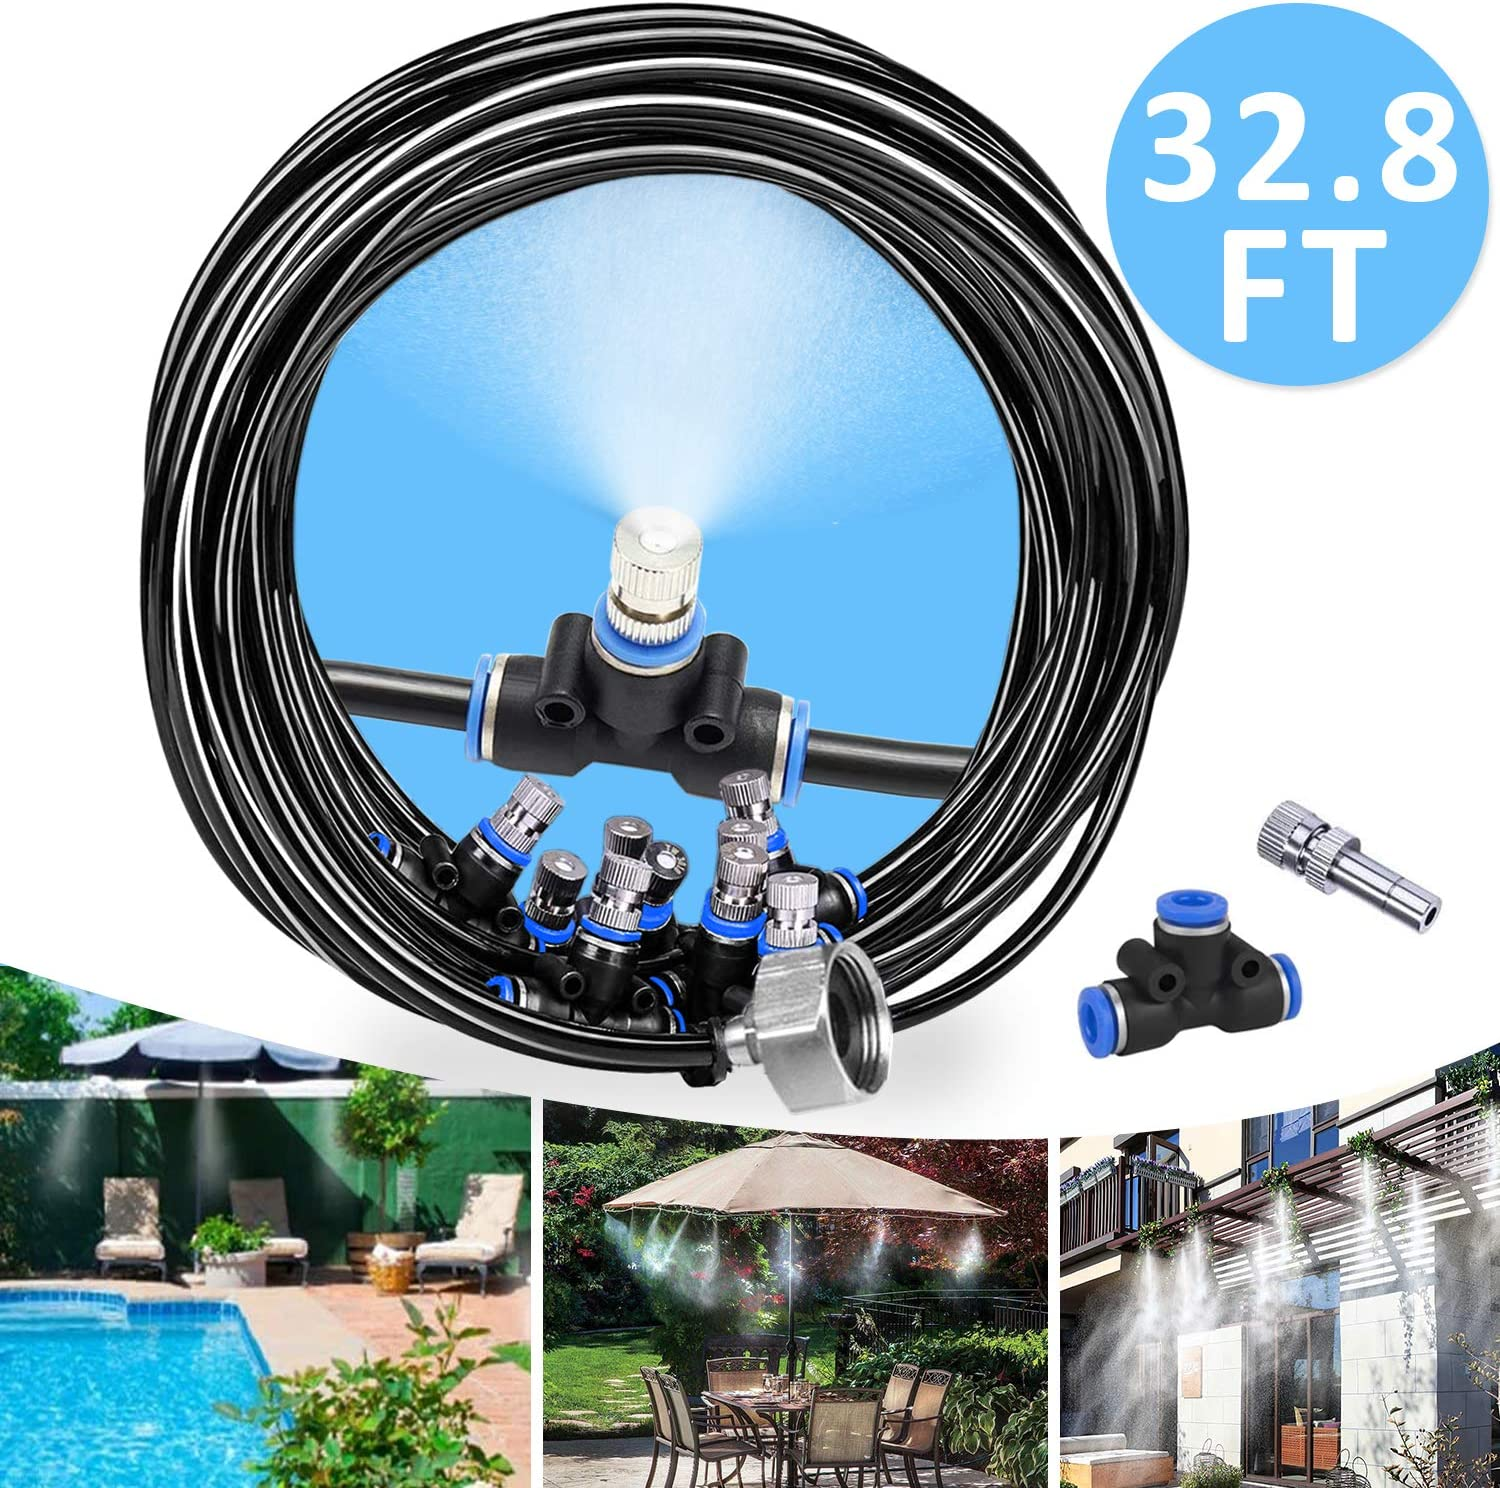 REDTRON 32.8FT Mist Cooling System, Patio Misting System with 10 Misting Nozzles, Outdoor Misting Kit for Patio Garden Greenhouse Trampoline for Waterpark